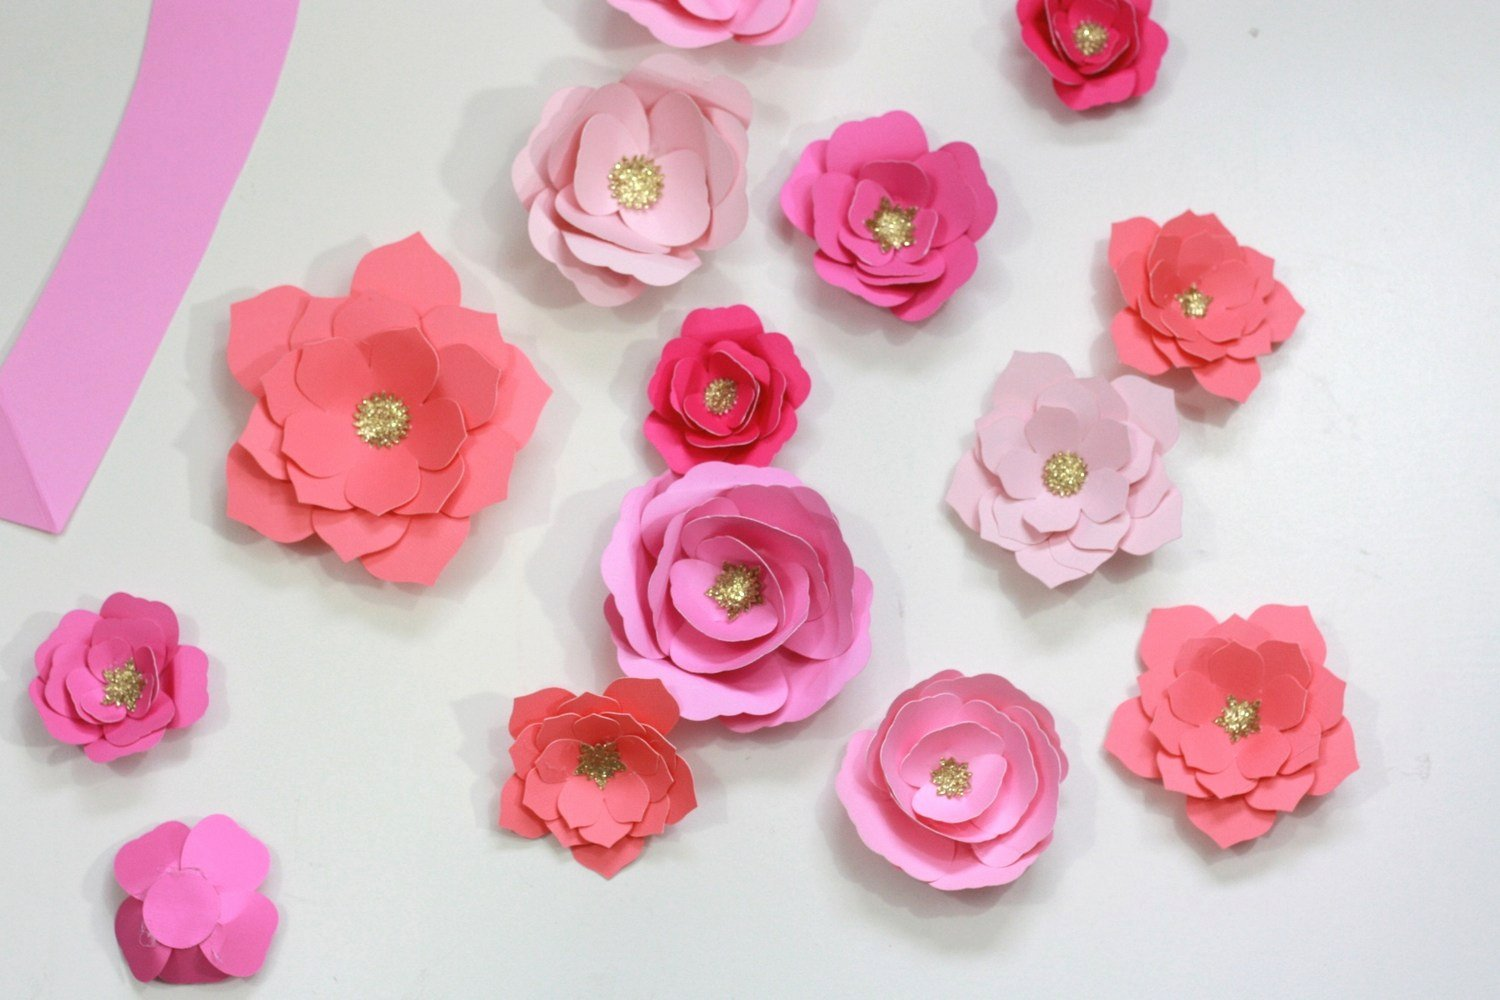 Cricut Paper Roses Unique How to Make Paper Flowers with Your Cricut